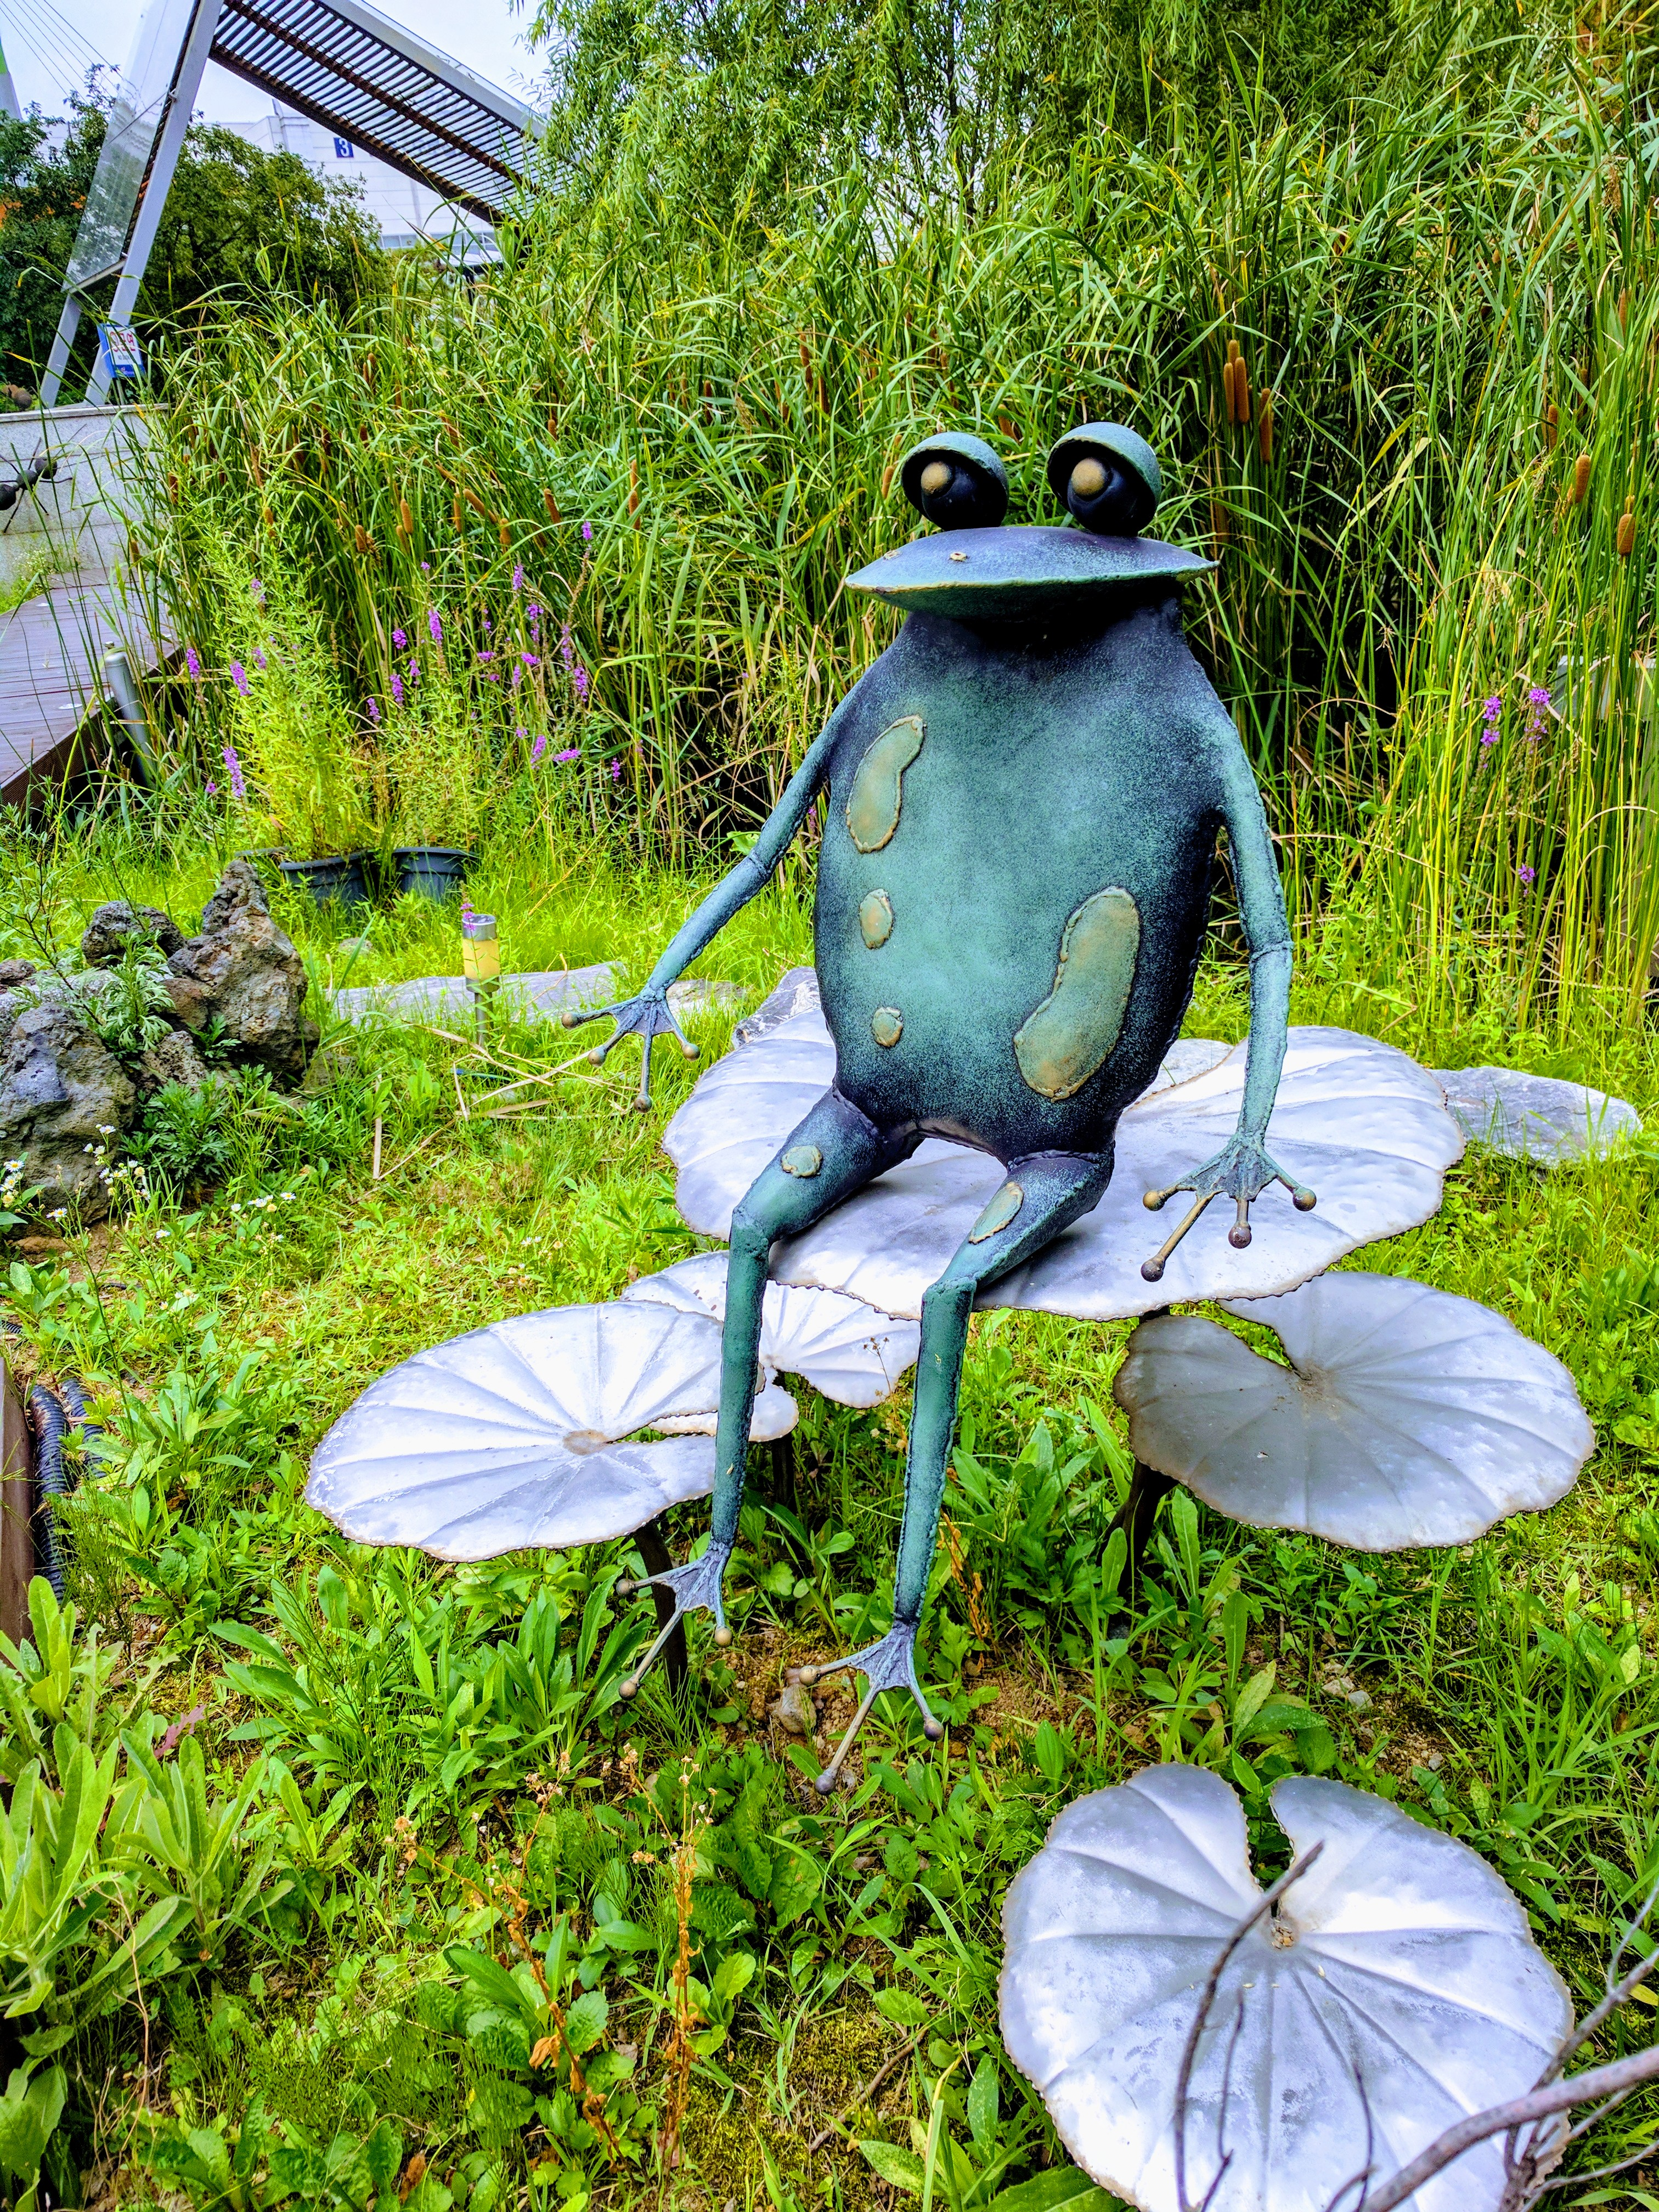 Iron Frog; Image ONLY